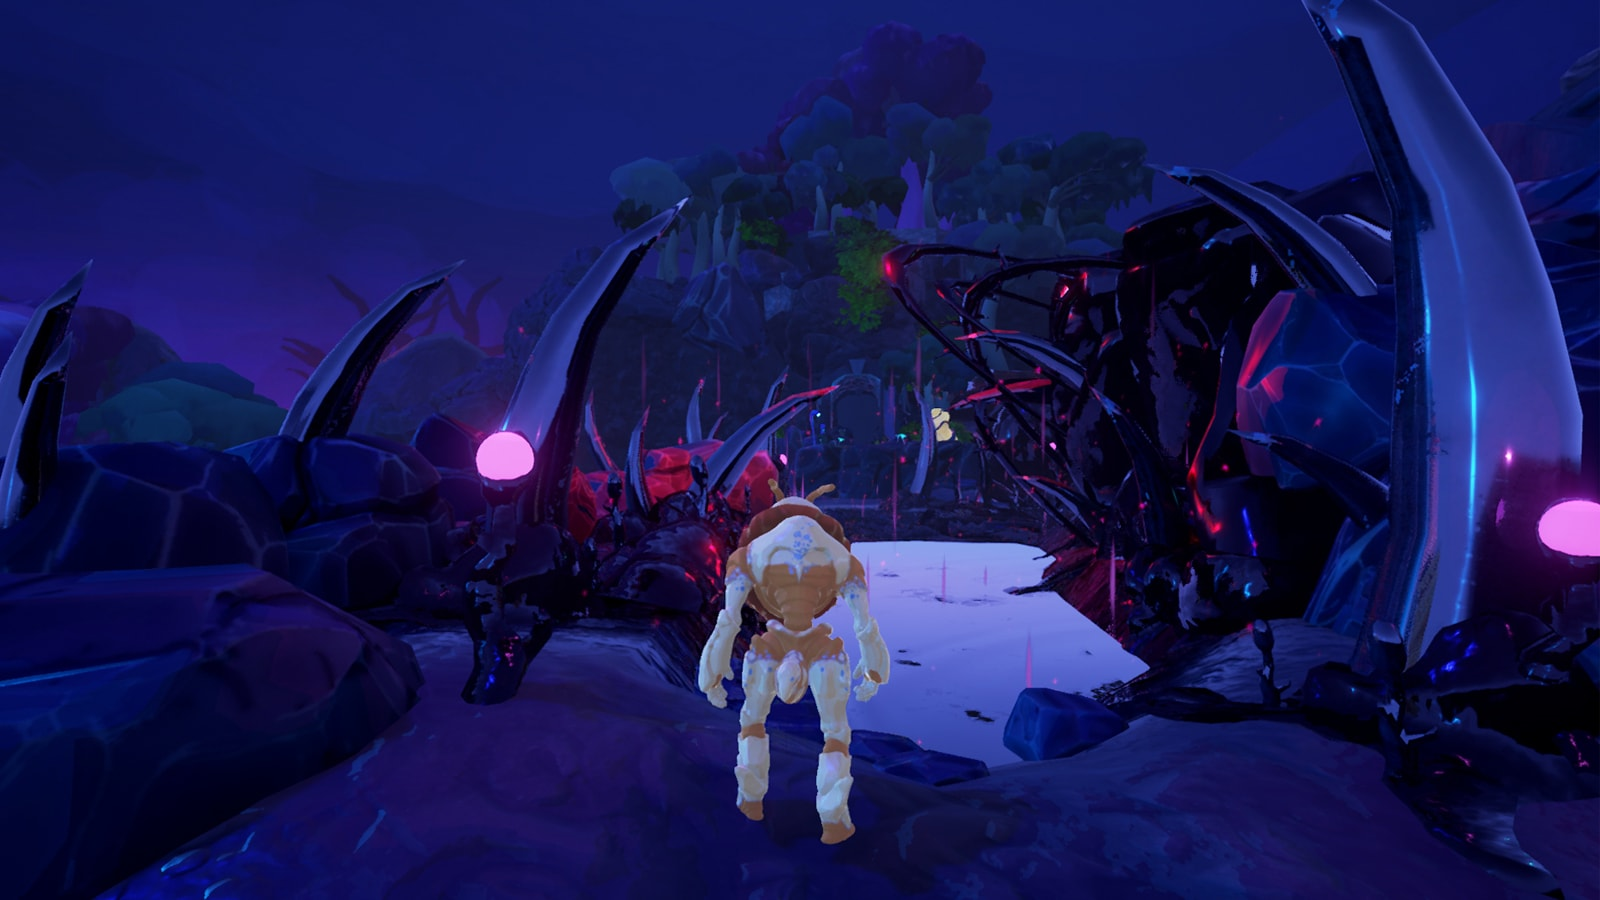 The game's alien hero stands amid a strange rock landscape with shiny, spiked growths emerging out of it.